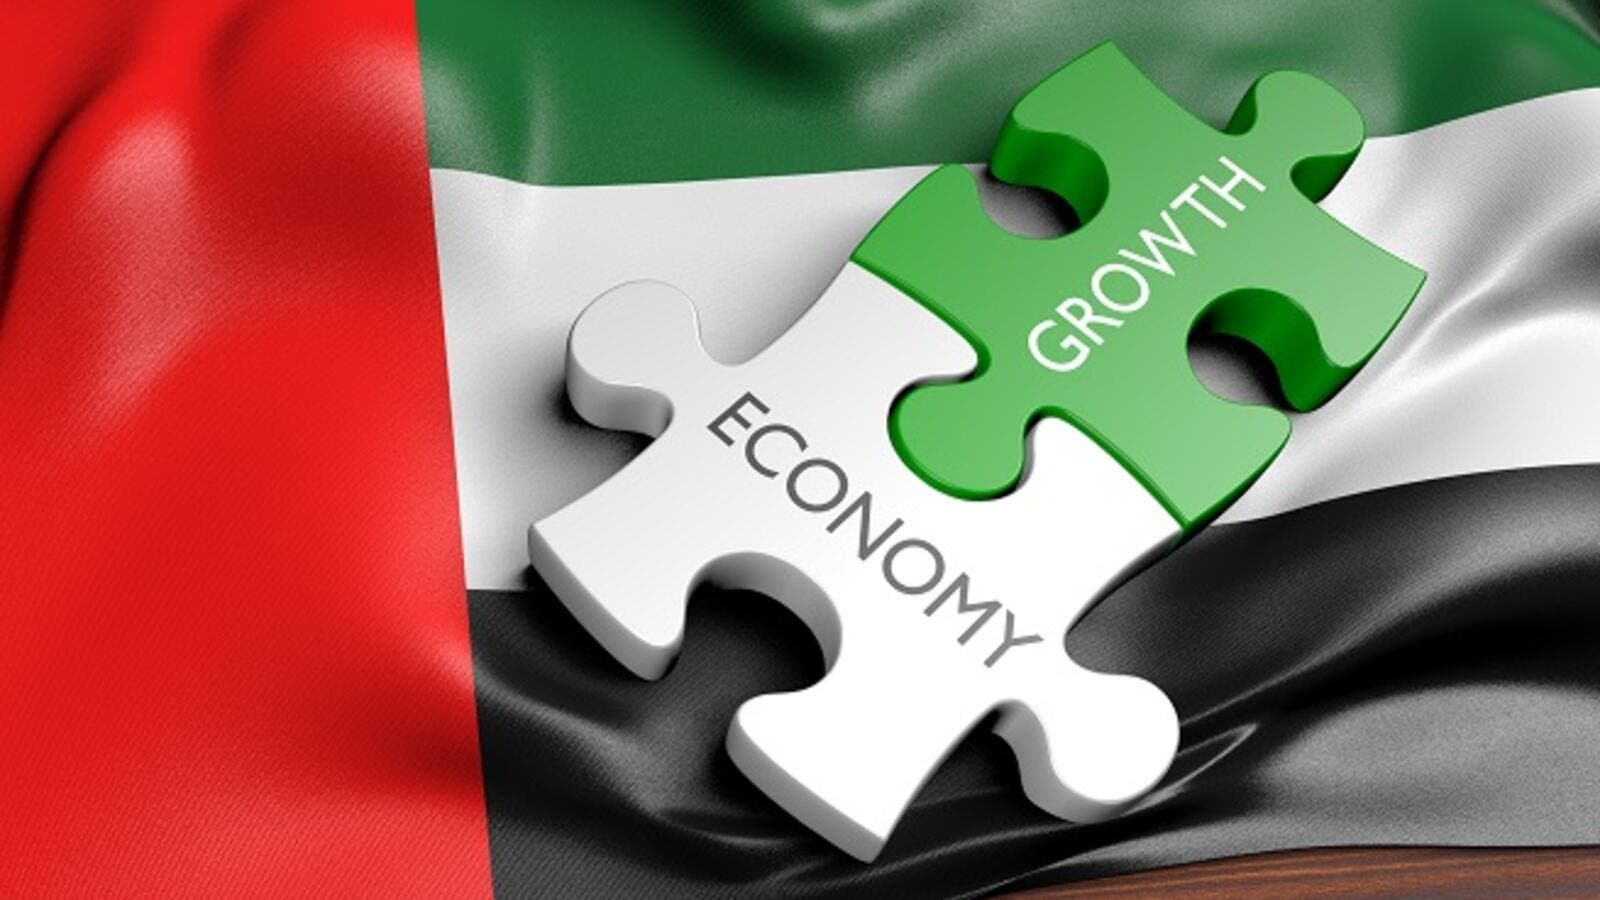 Several economic officials and analysts have affirmed that the outlook for the UAE economy is highly positive despite global headwinds. (Shutterstock)